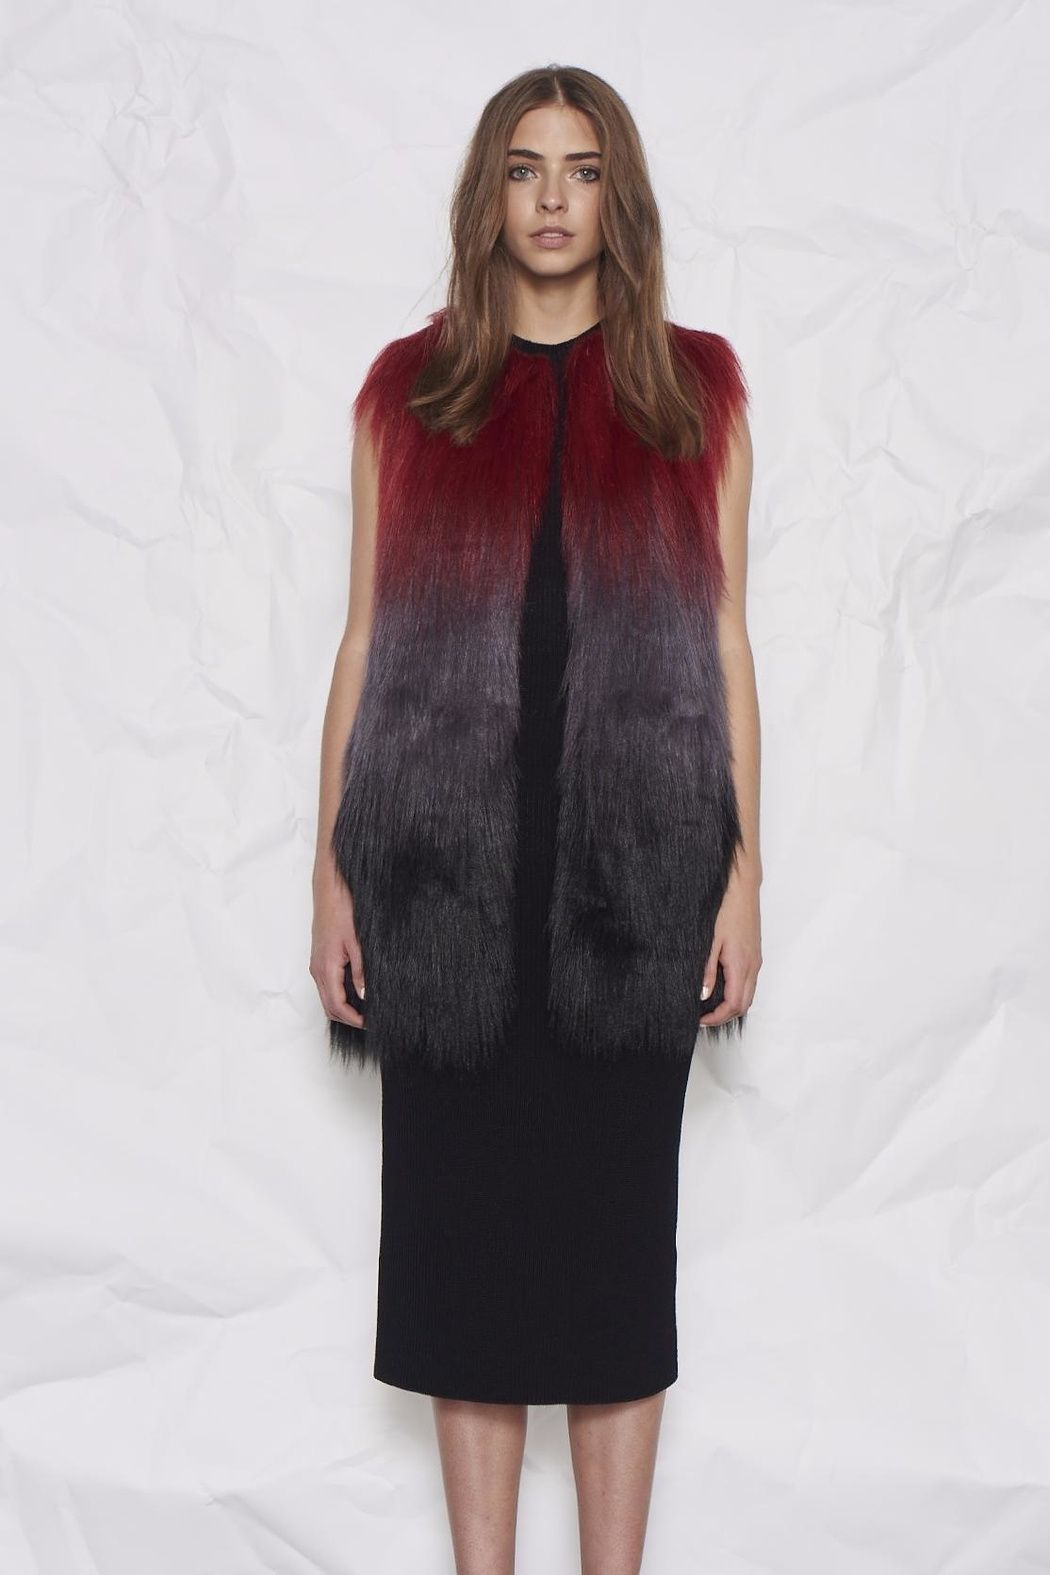 Mercury rising statement vest is a beautiful ombre long pile fur in